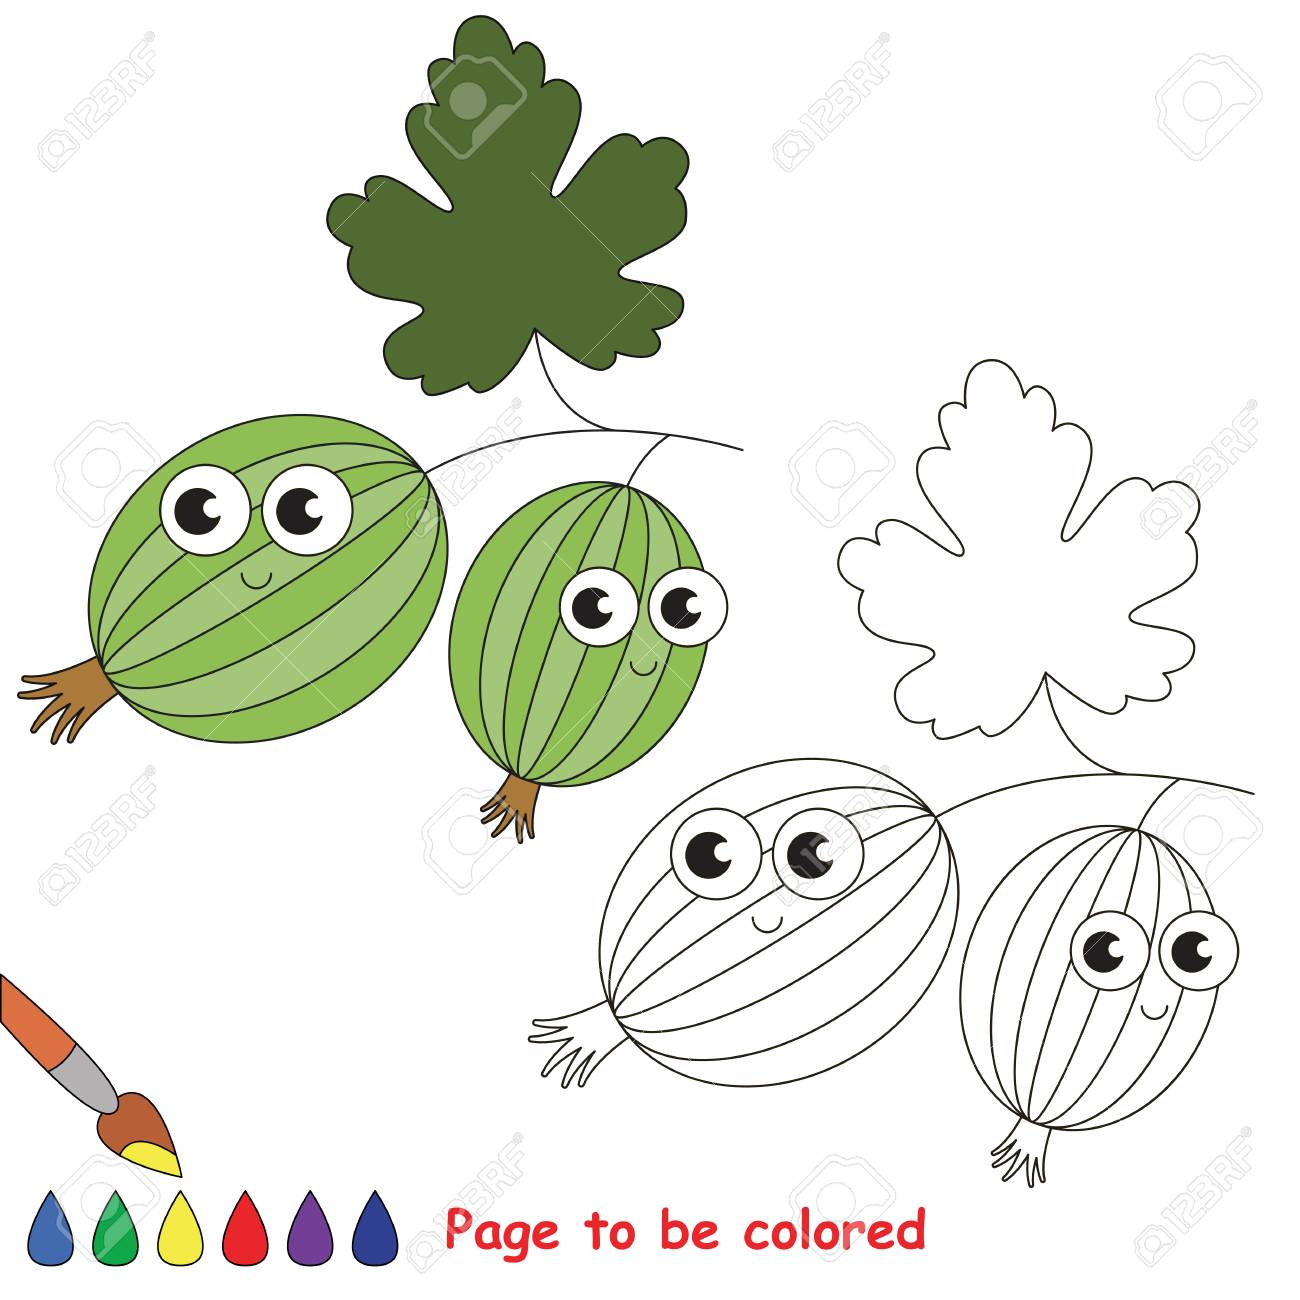 Cute Gooseberry To Be Colored. Coloring Book To Educate Kids ...